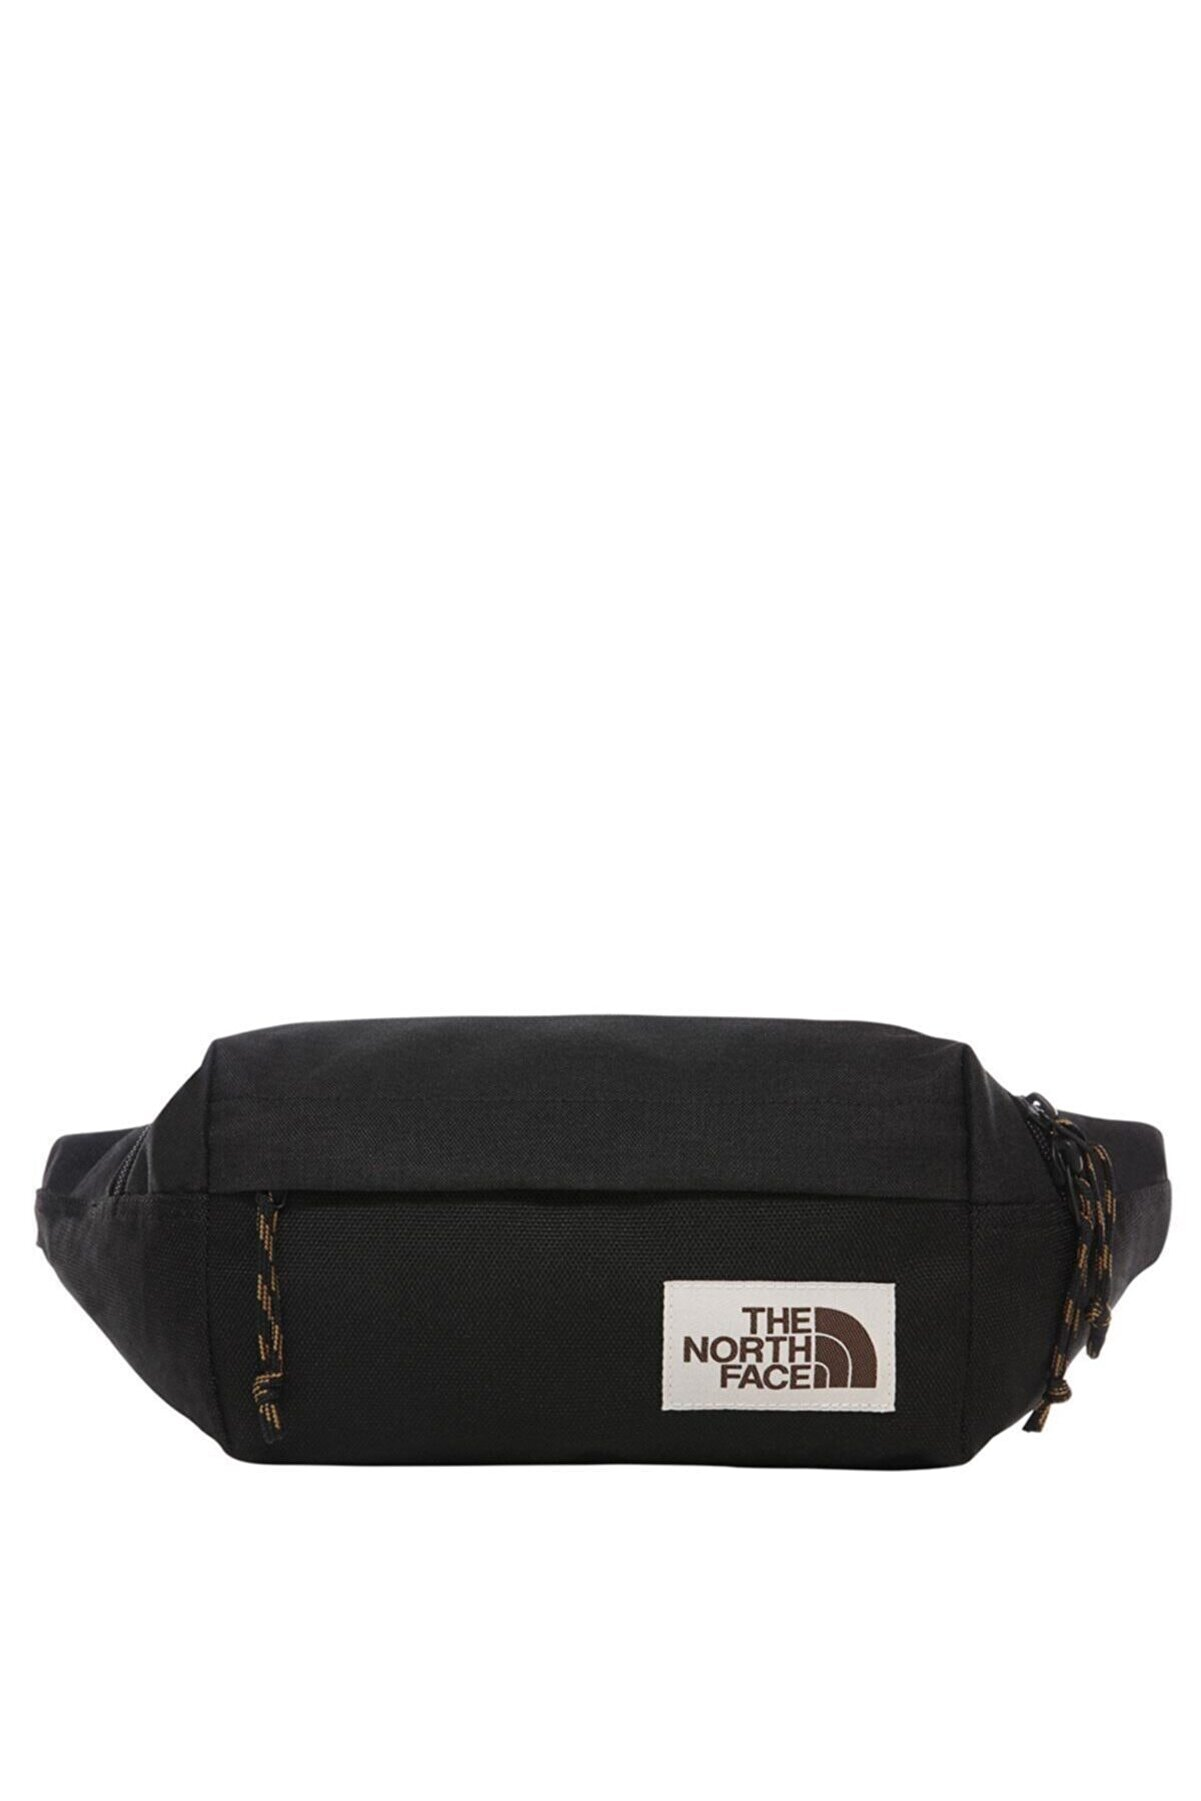 The North Face Lumbar Pack Nf0a3ky6ks71